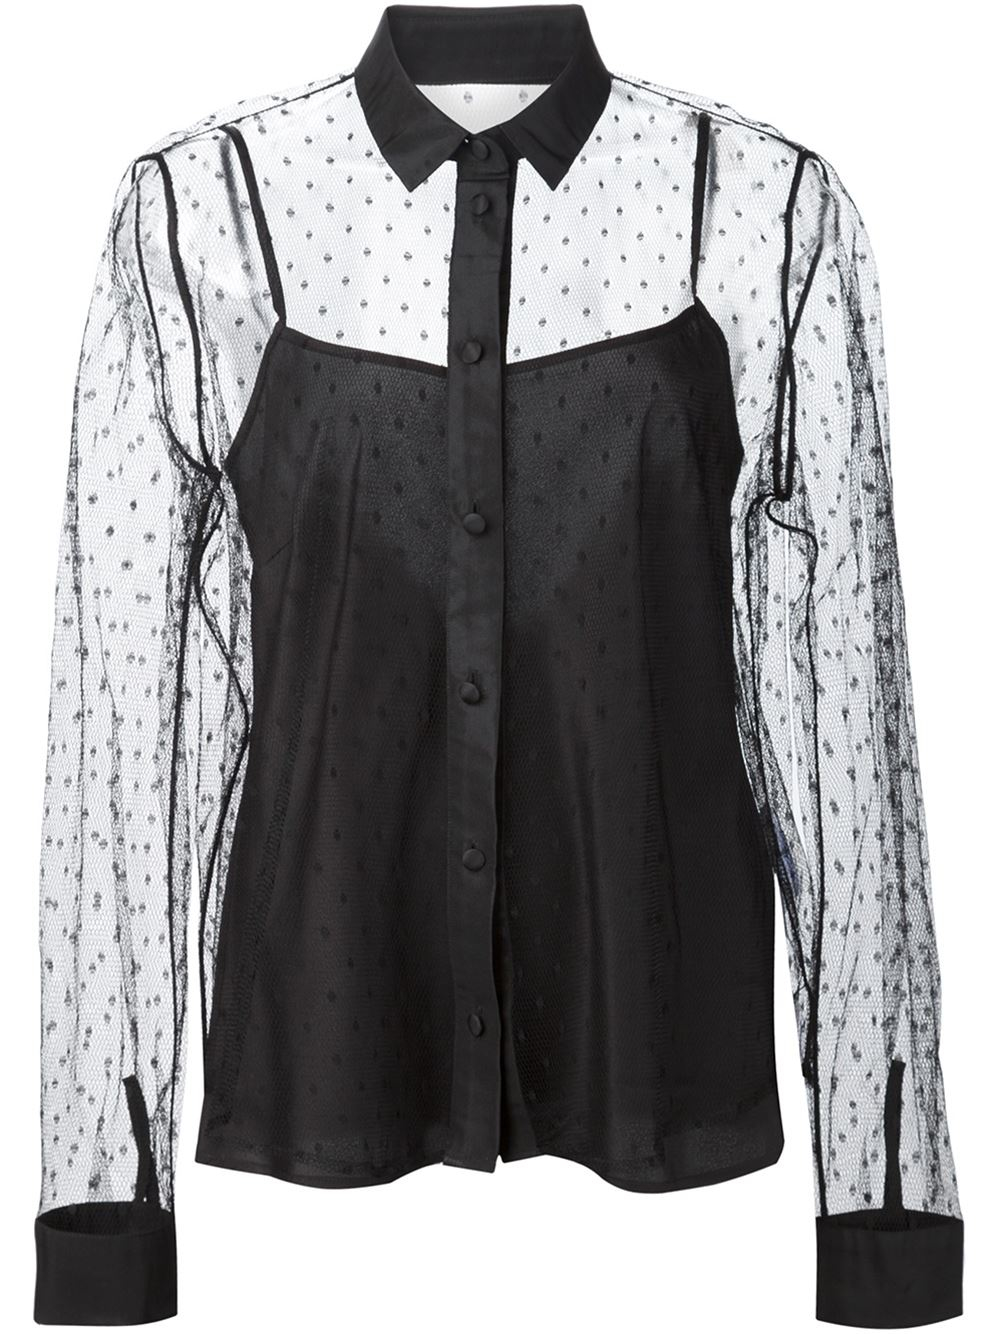 Zara Sheer Embroidered Blouse 119